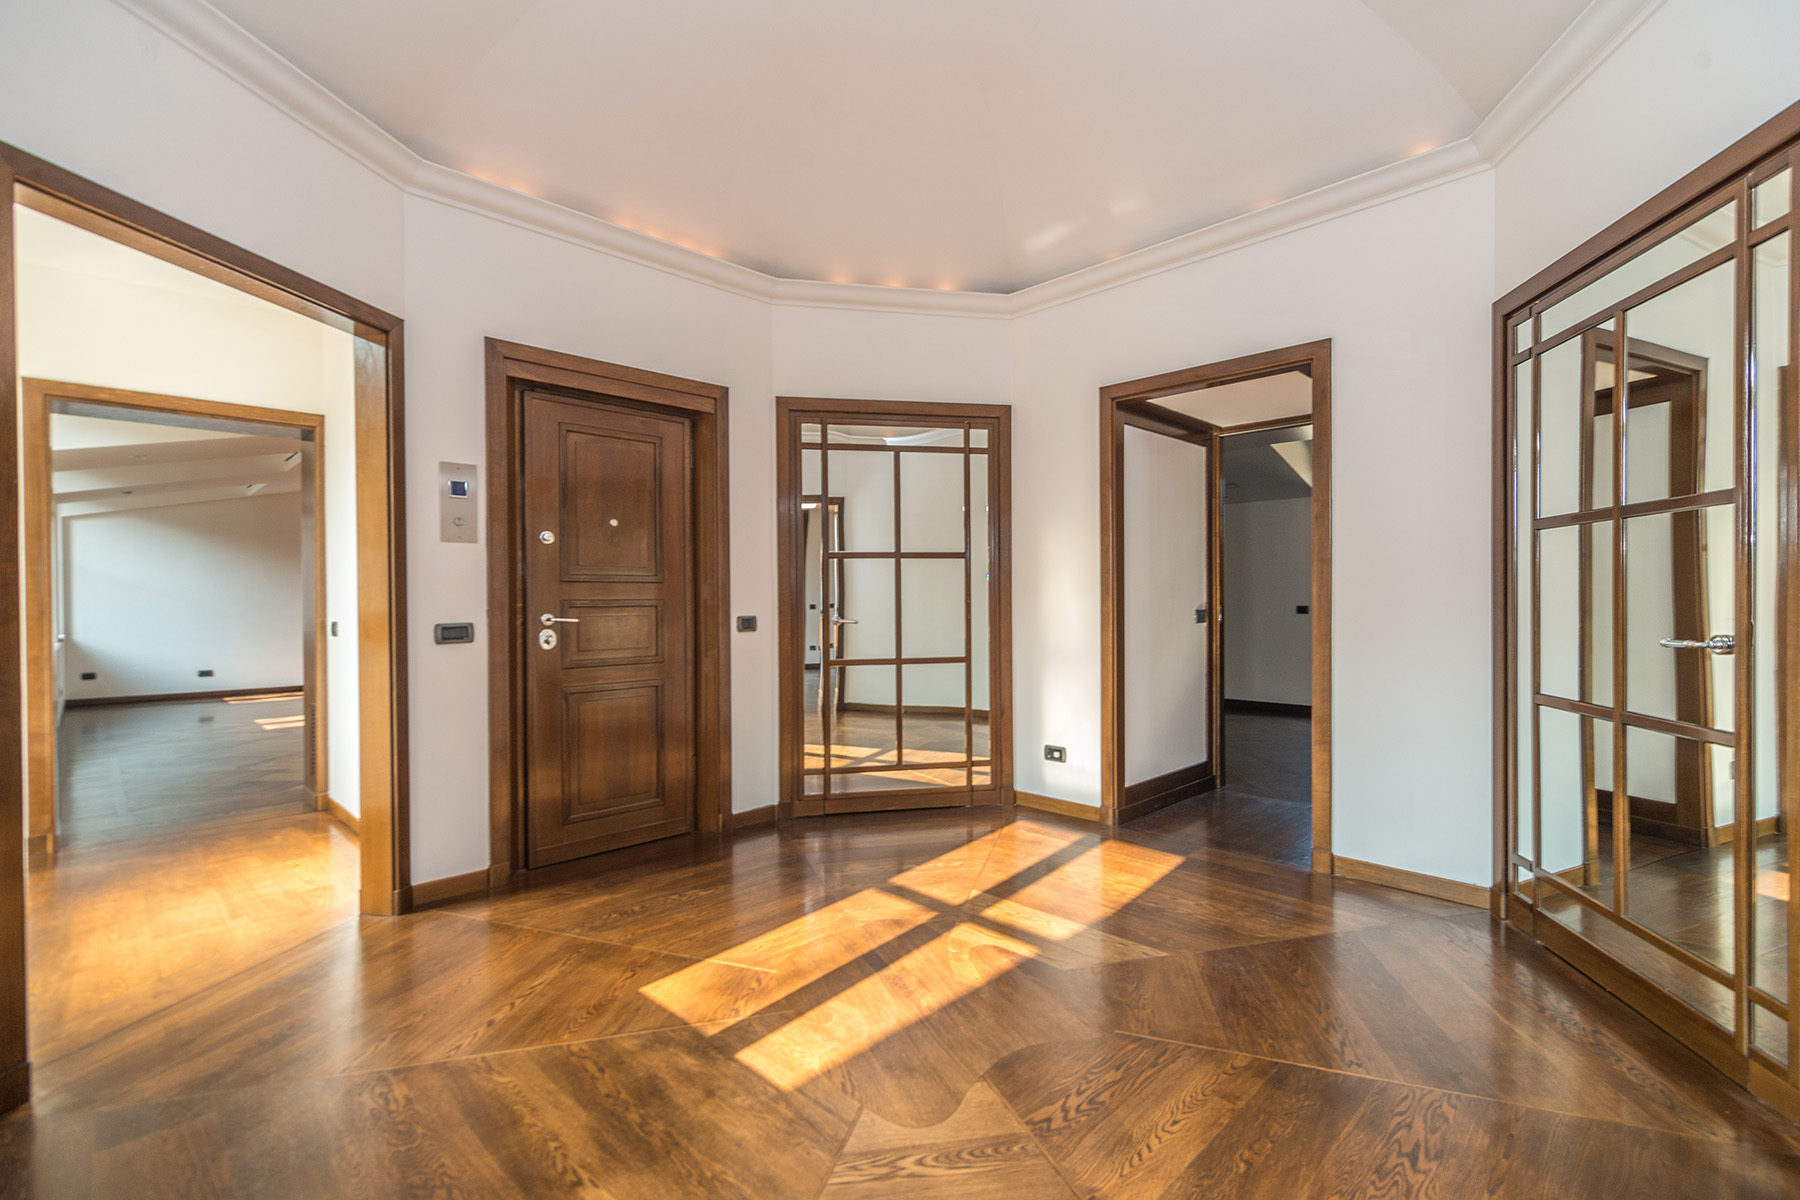 Apartment for Sale at Exclusive penthouse with rooftop garden in Via della Spiga Milano, Milan 20121 Italy